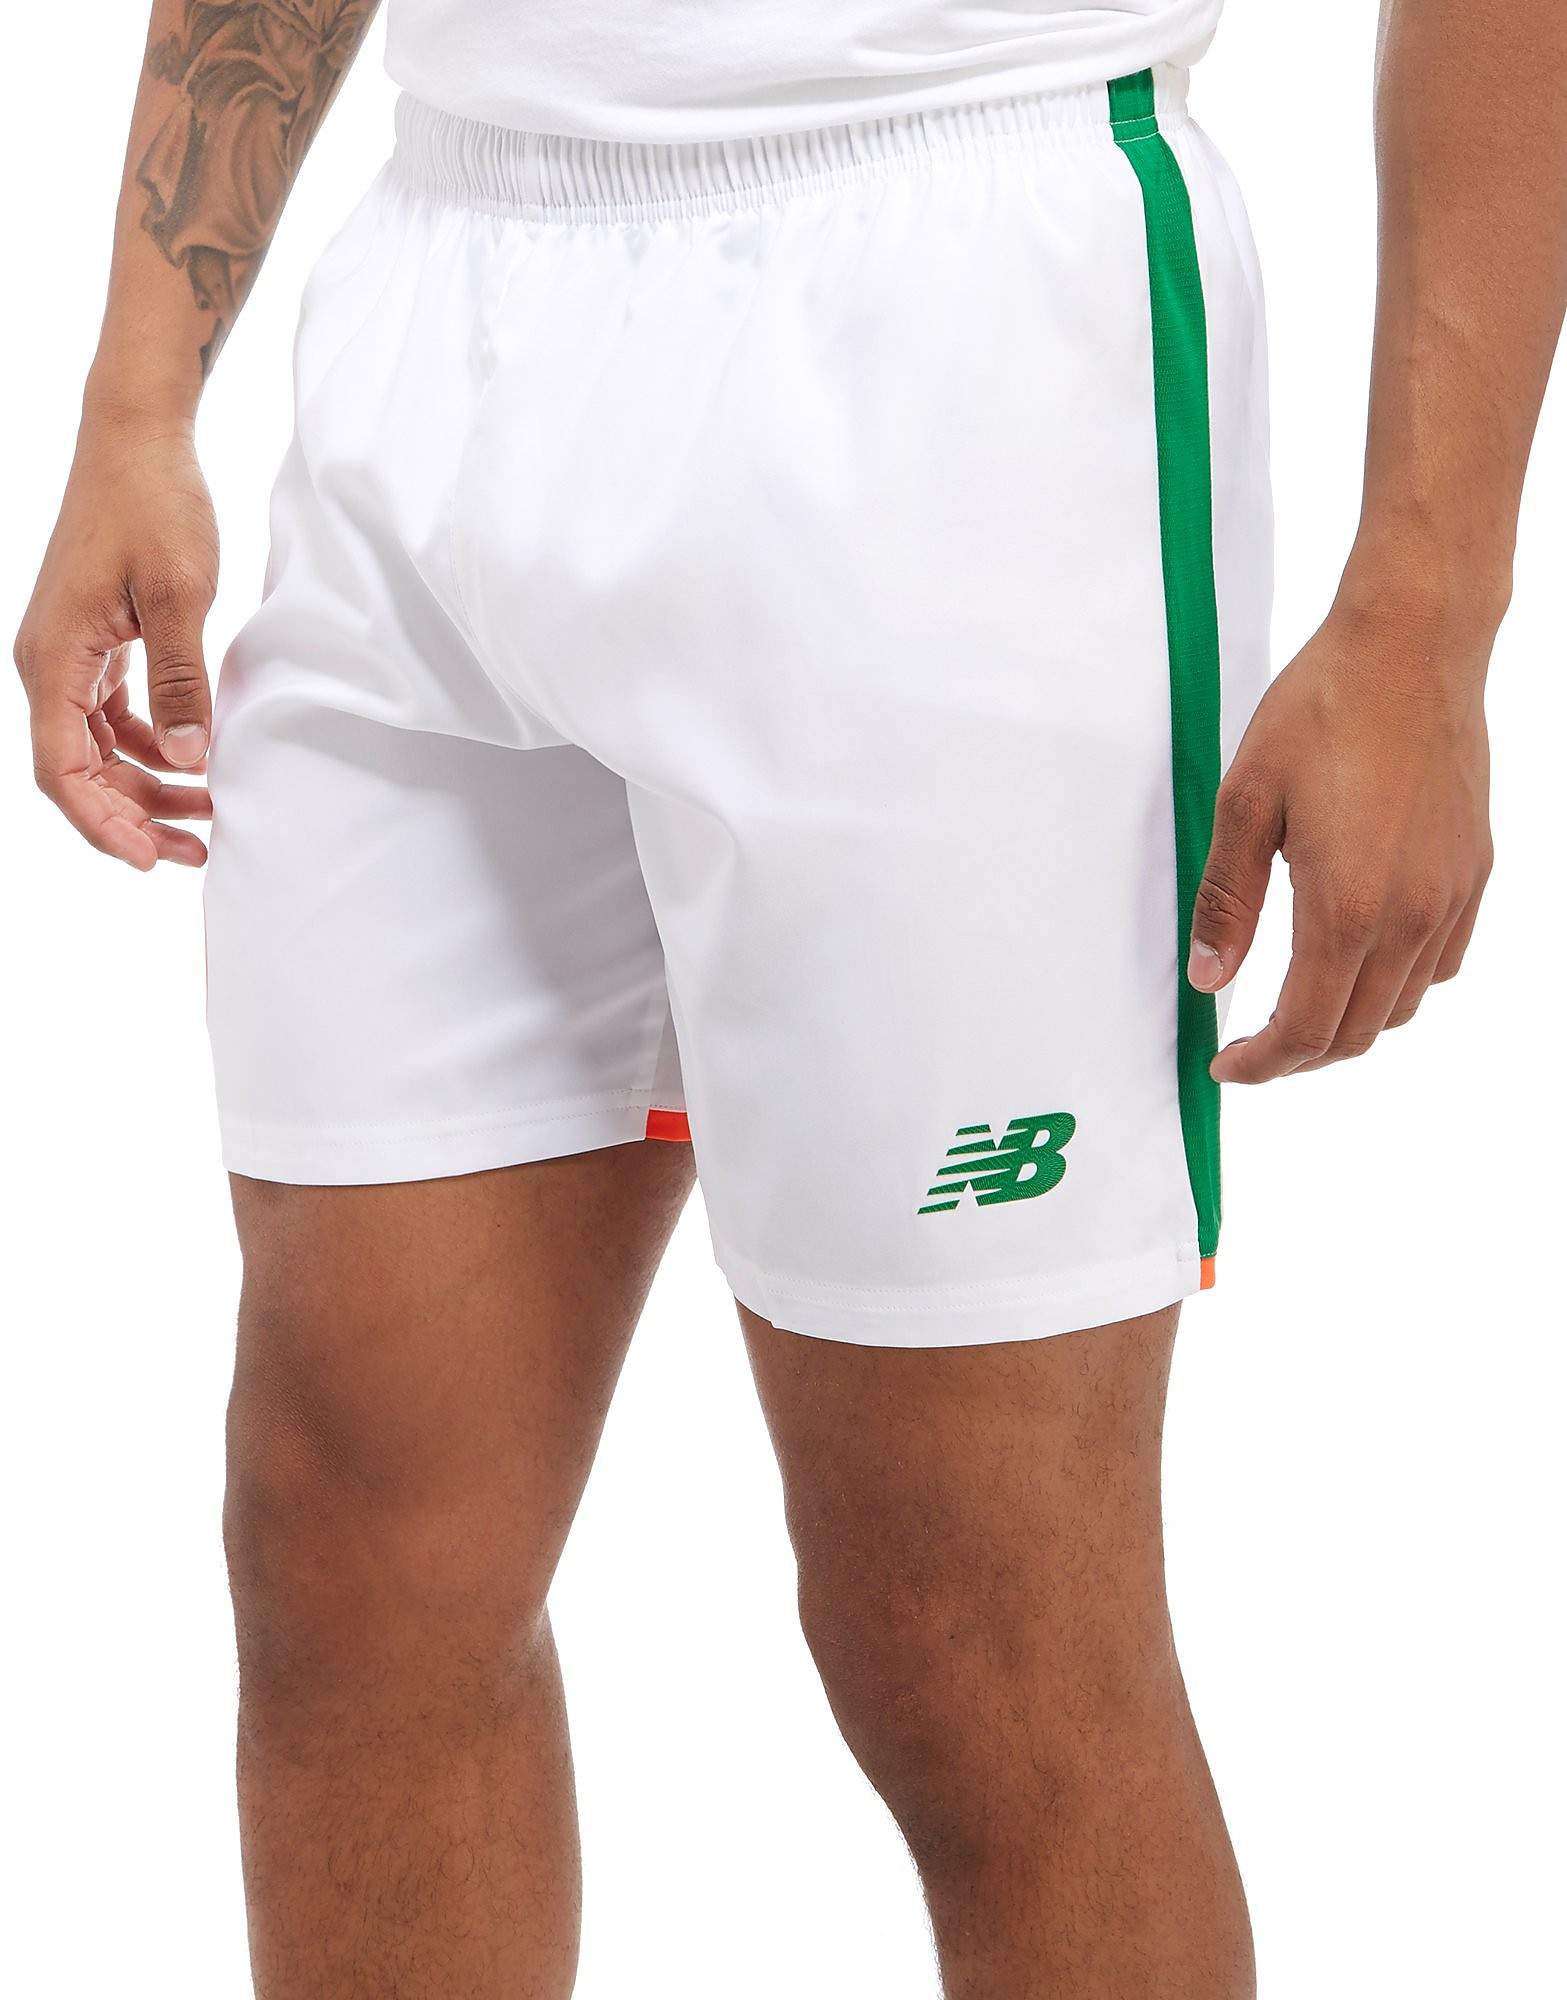 New Balance Republic of Ireland 2017/18 Home Shorts